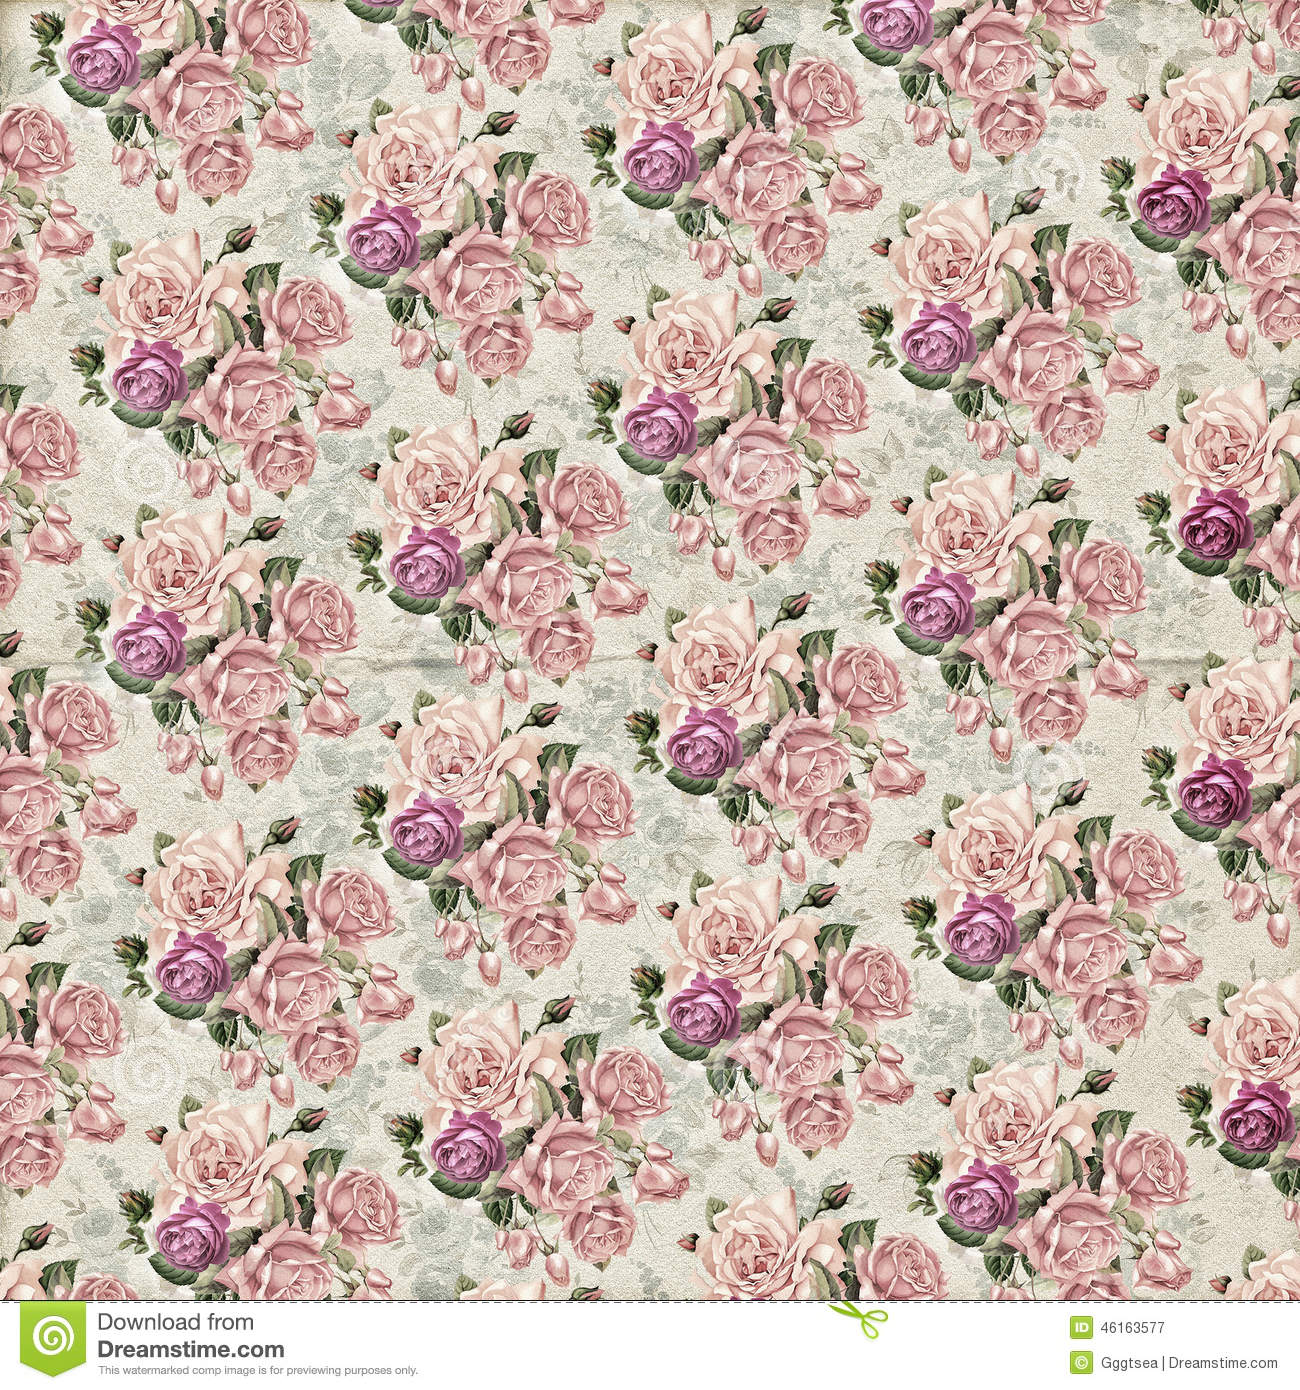 Vintage Flower Wallpaper Texture Stock Photo - Image: 46163577